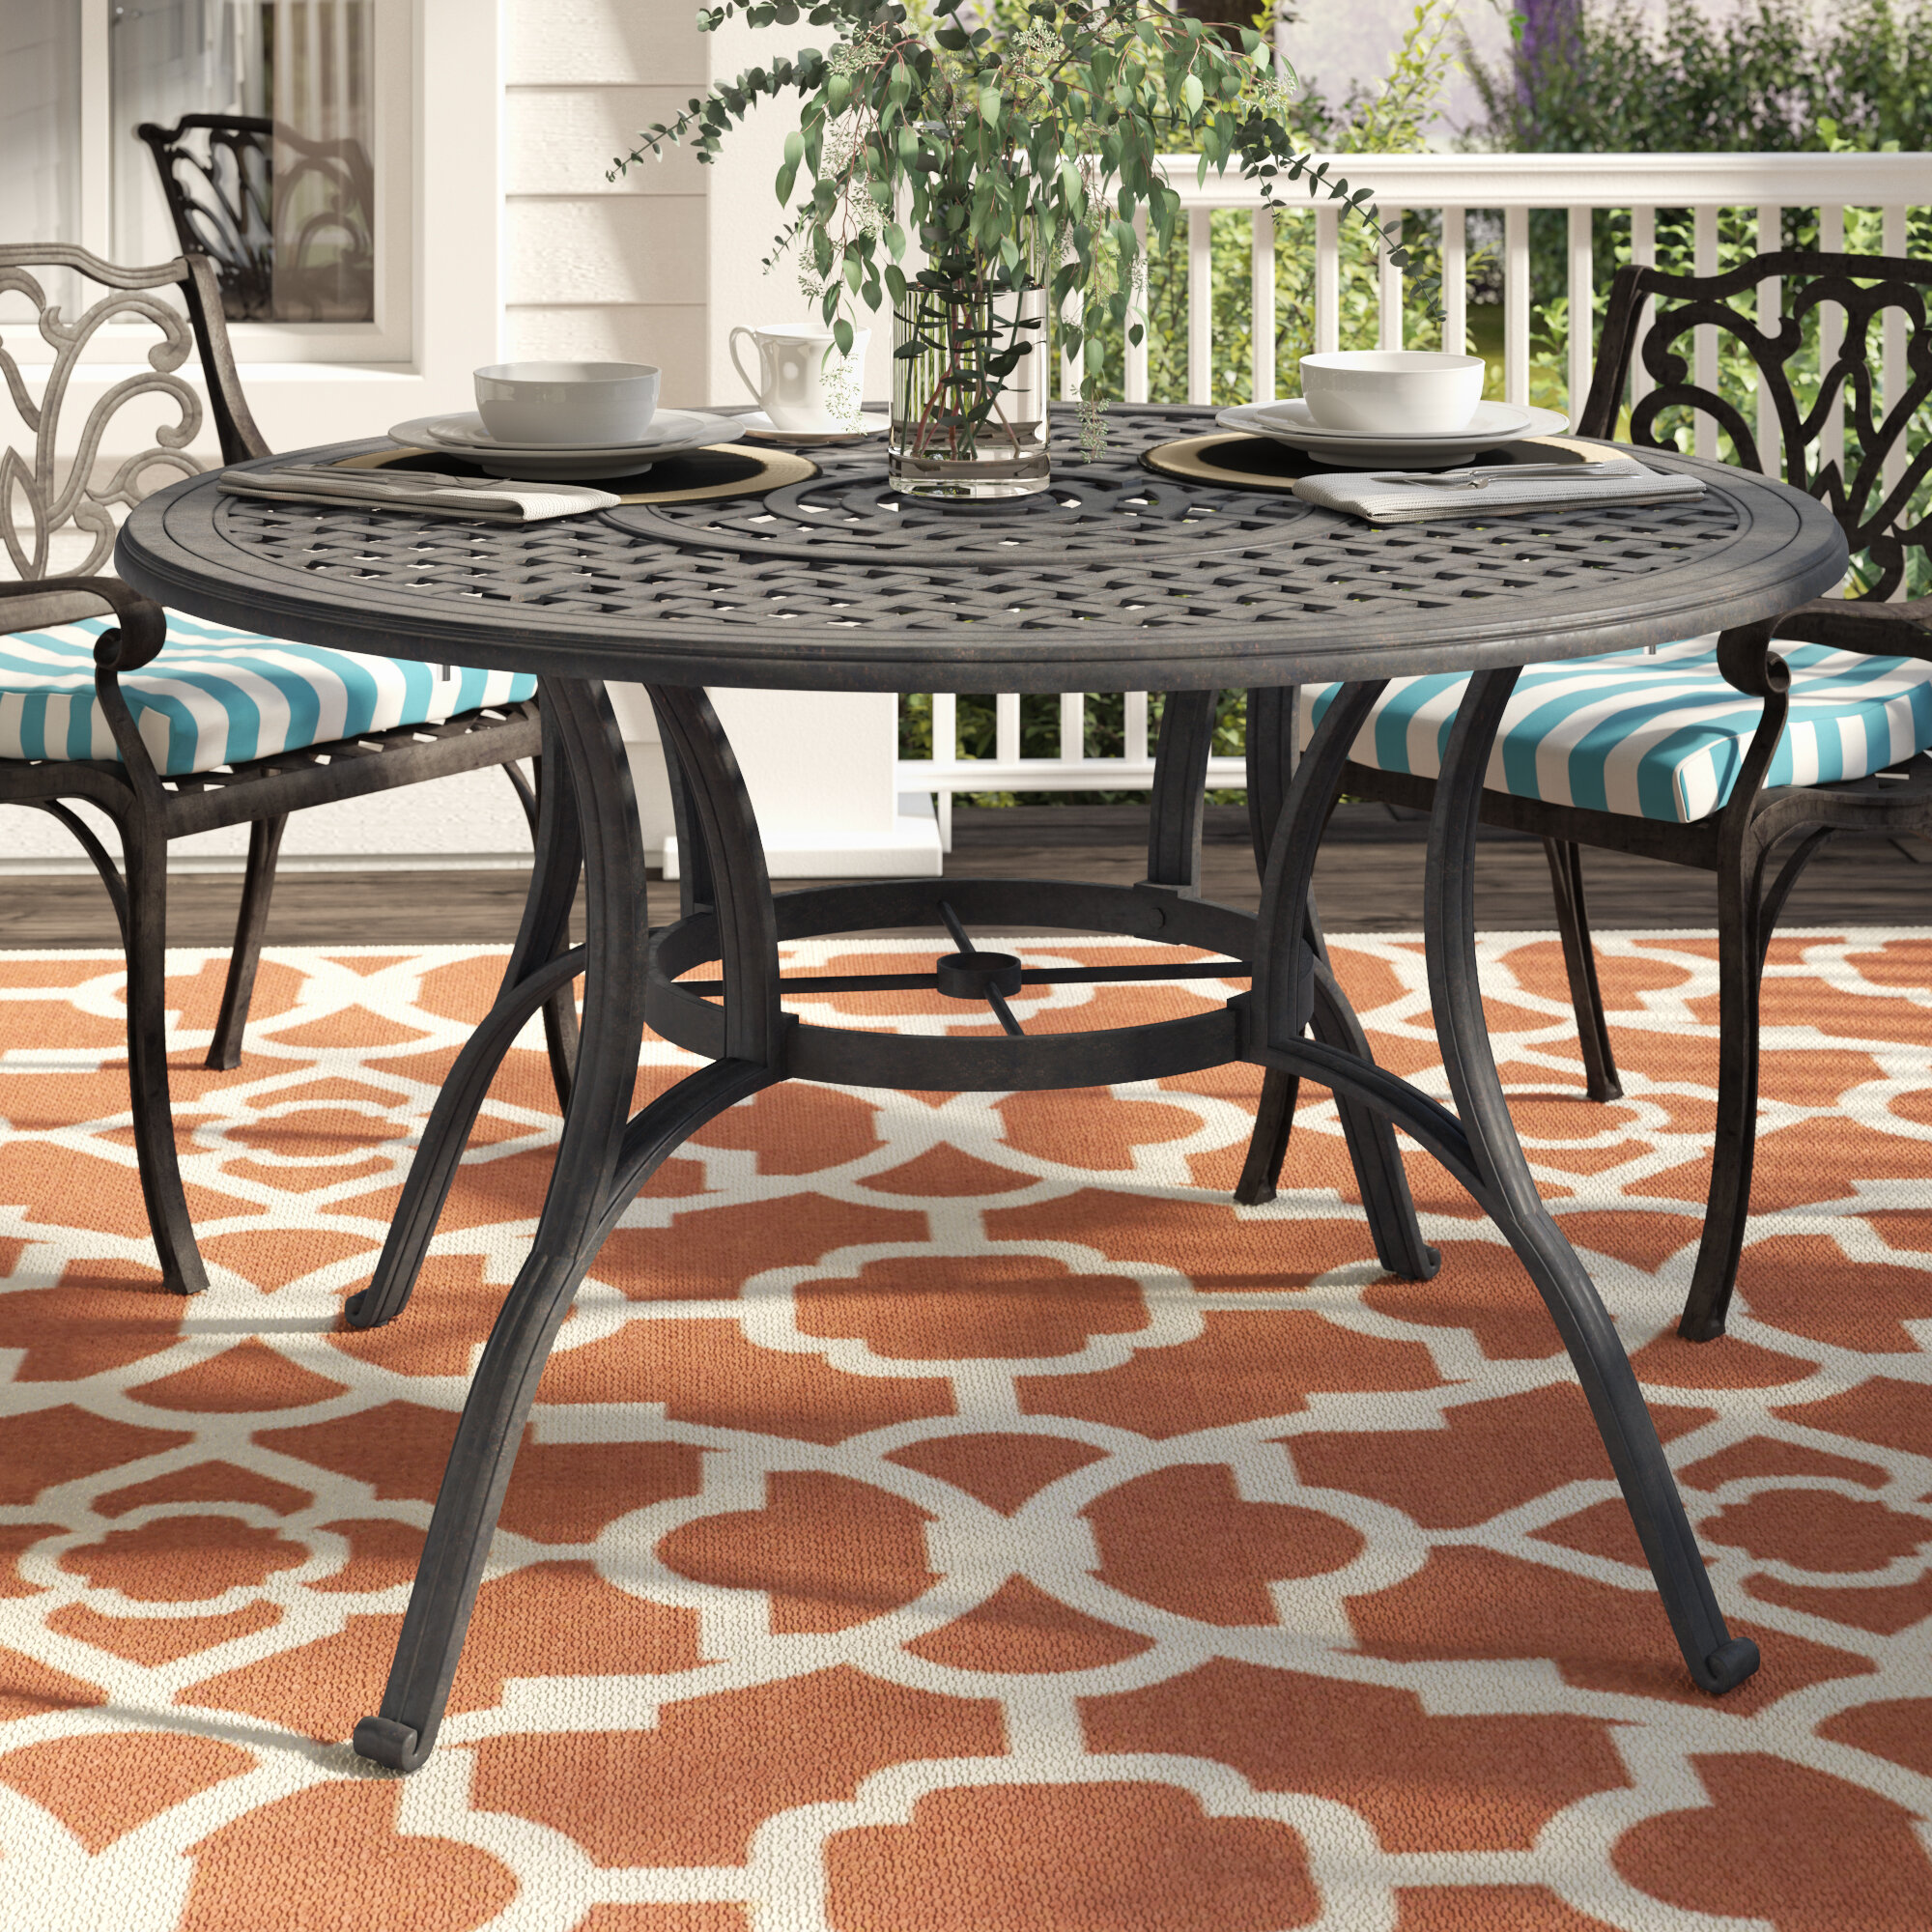 Darby Home Co Maytown Circular Dining Table U0026 Reviews | Wayfair